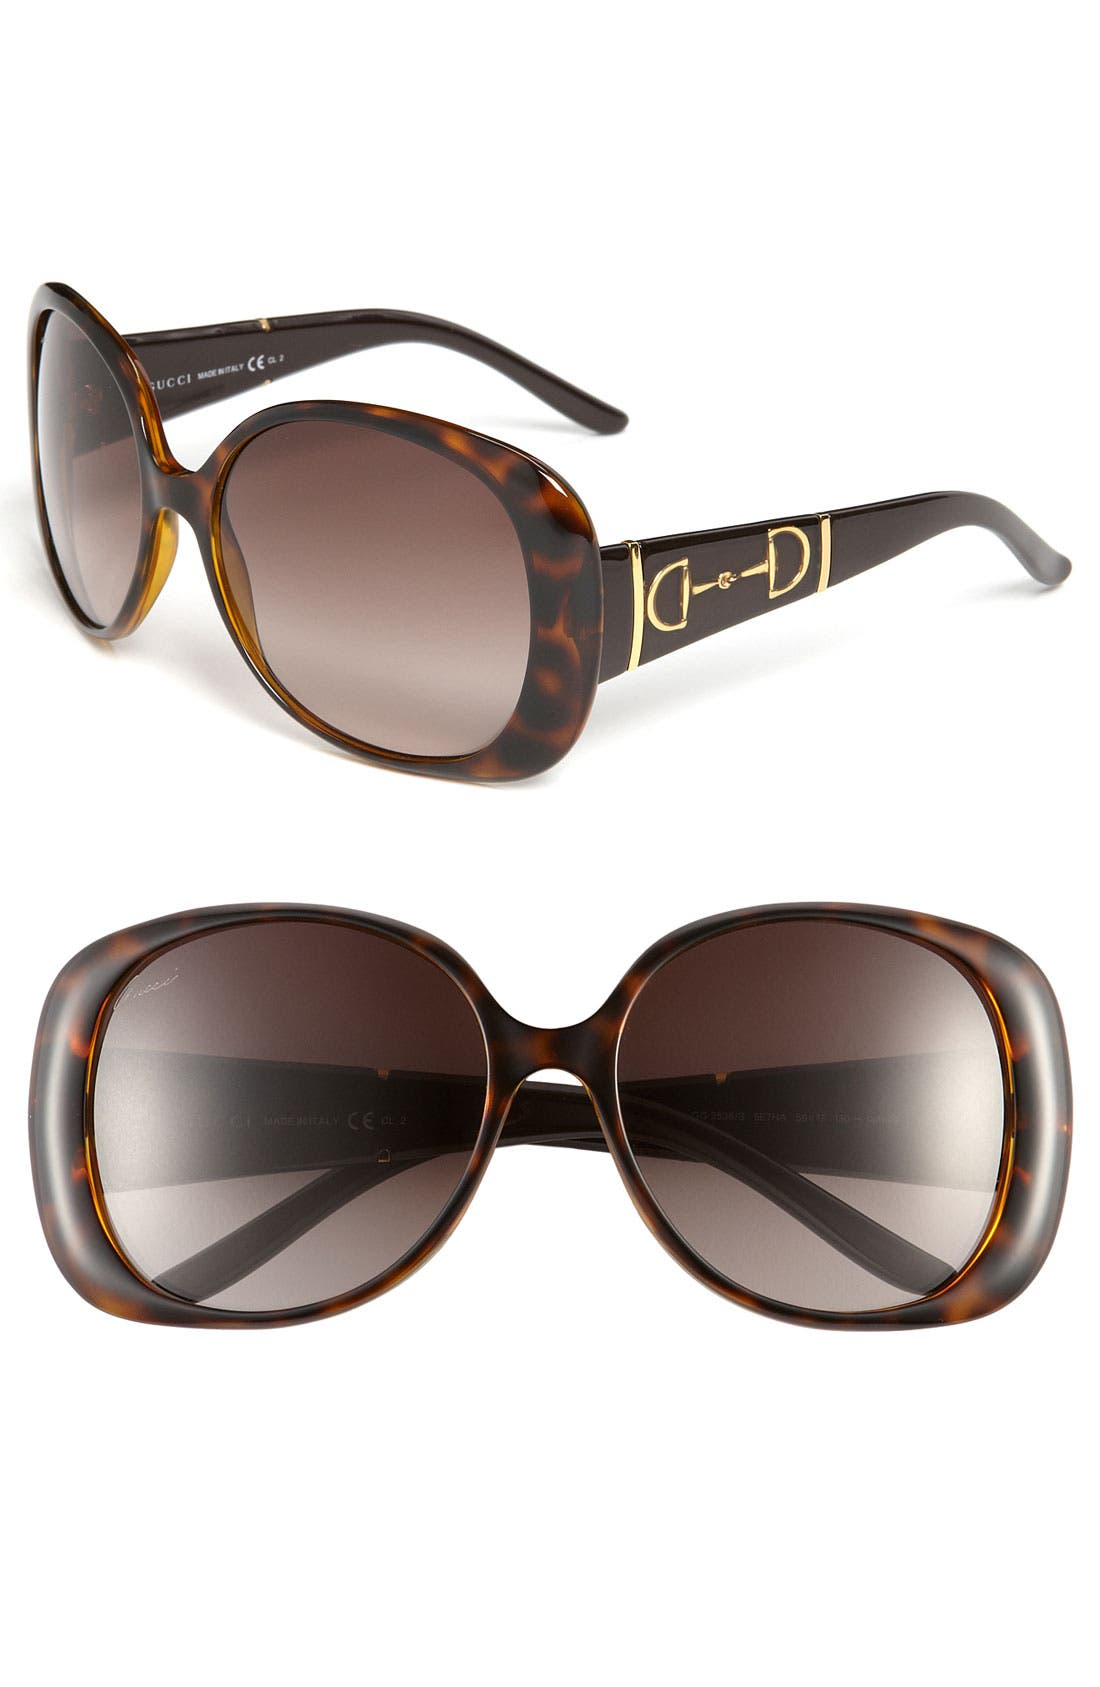 Main Image - Gucci Oversized Sunglasses